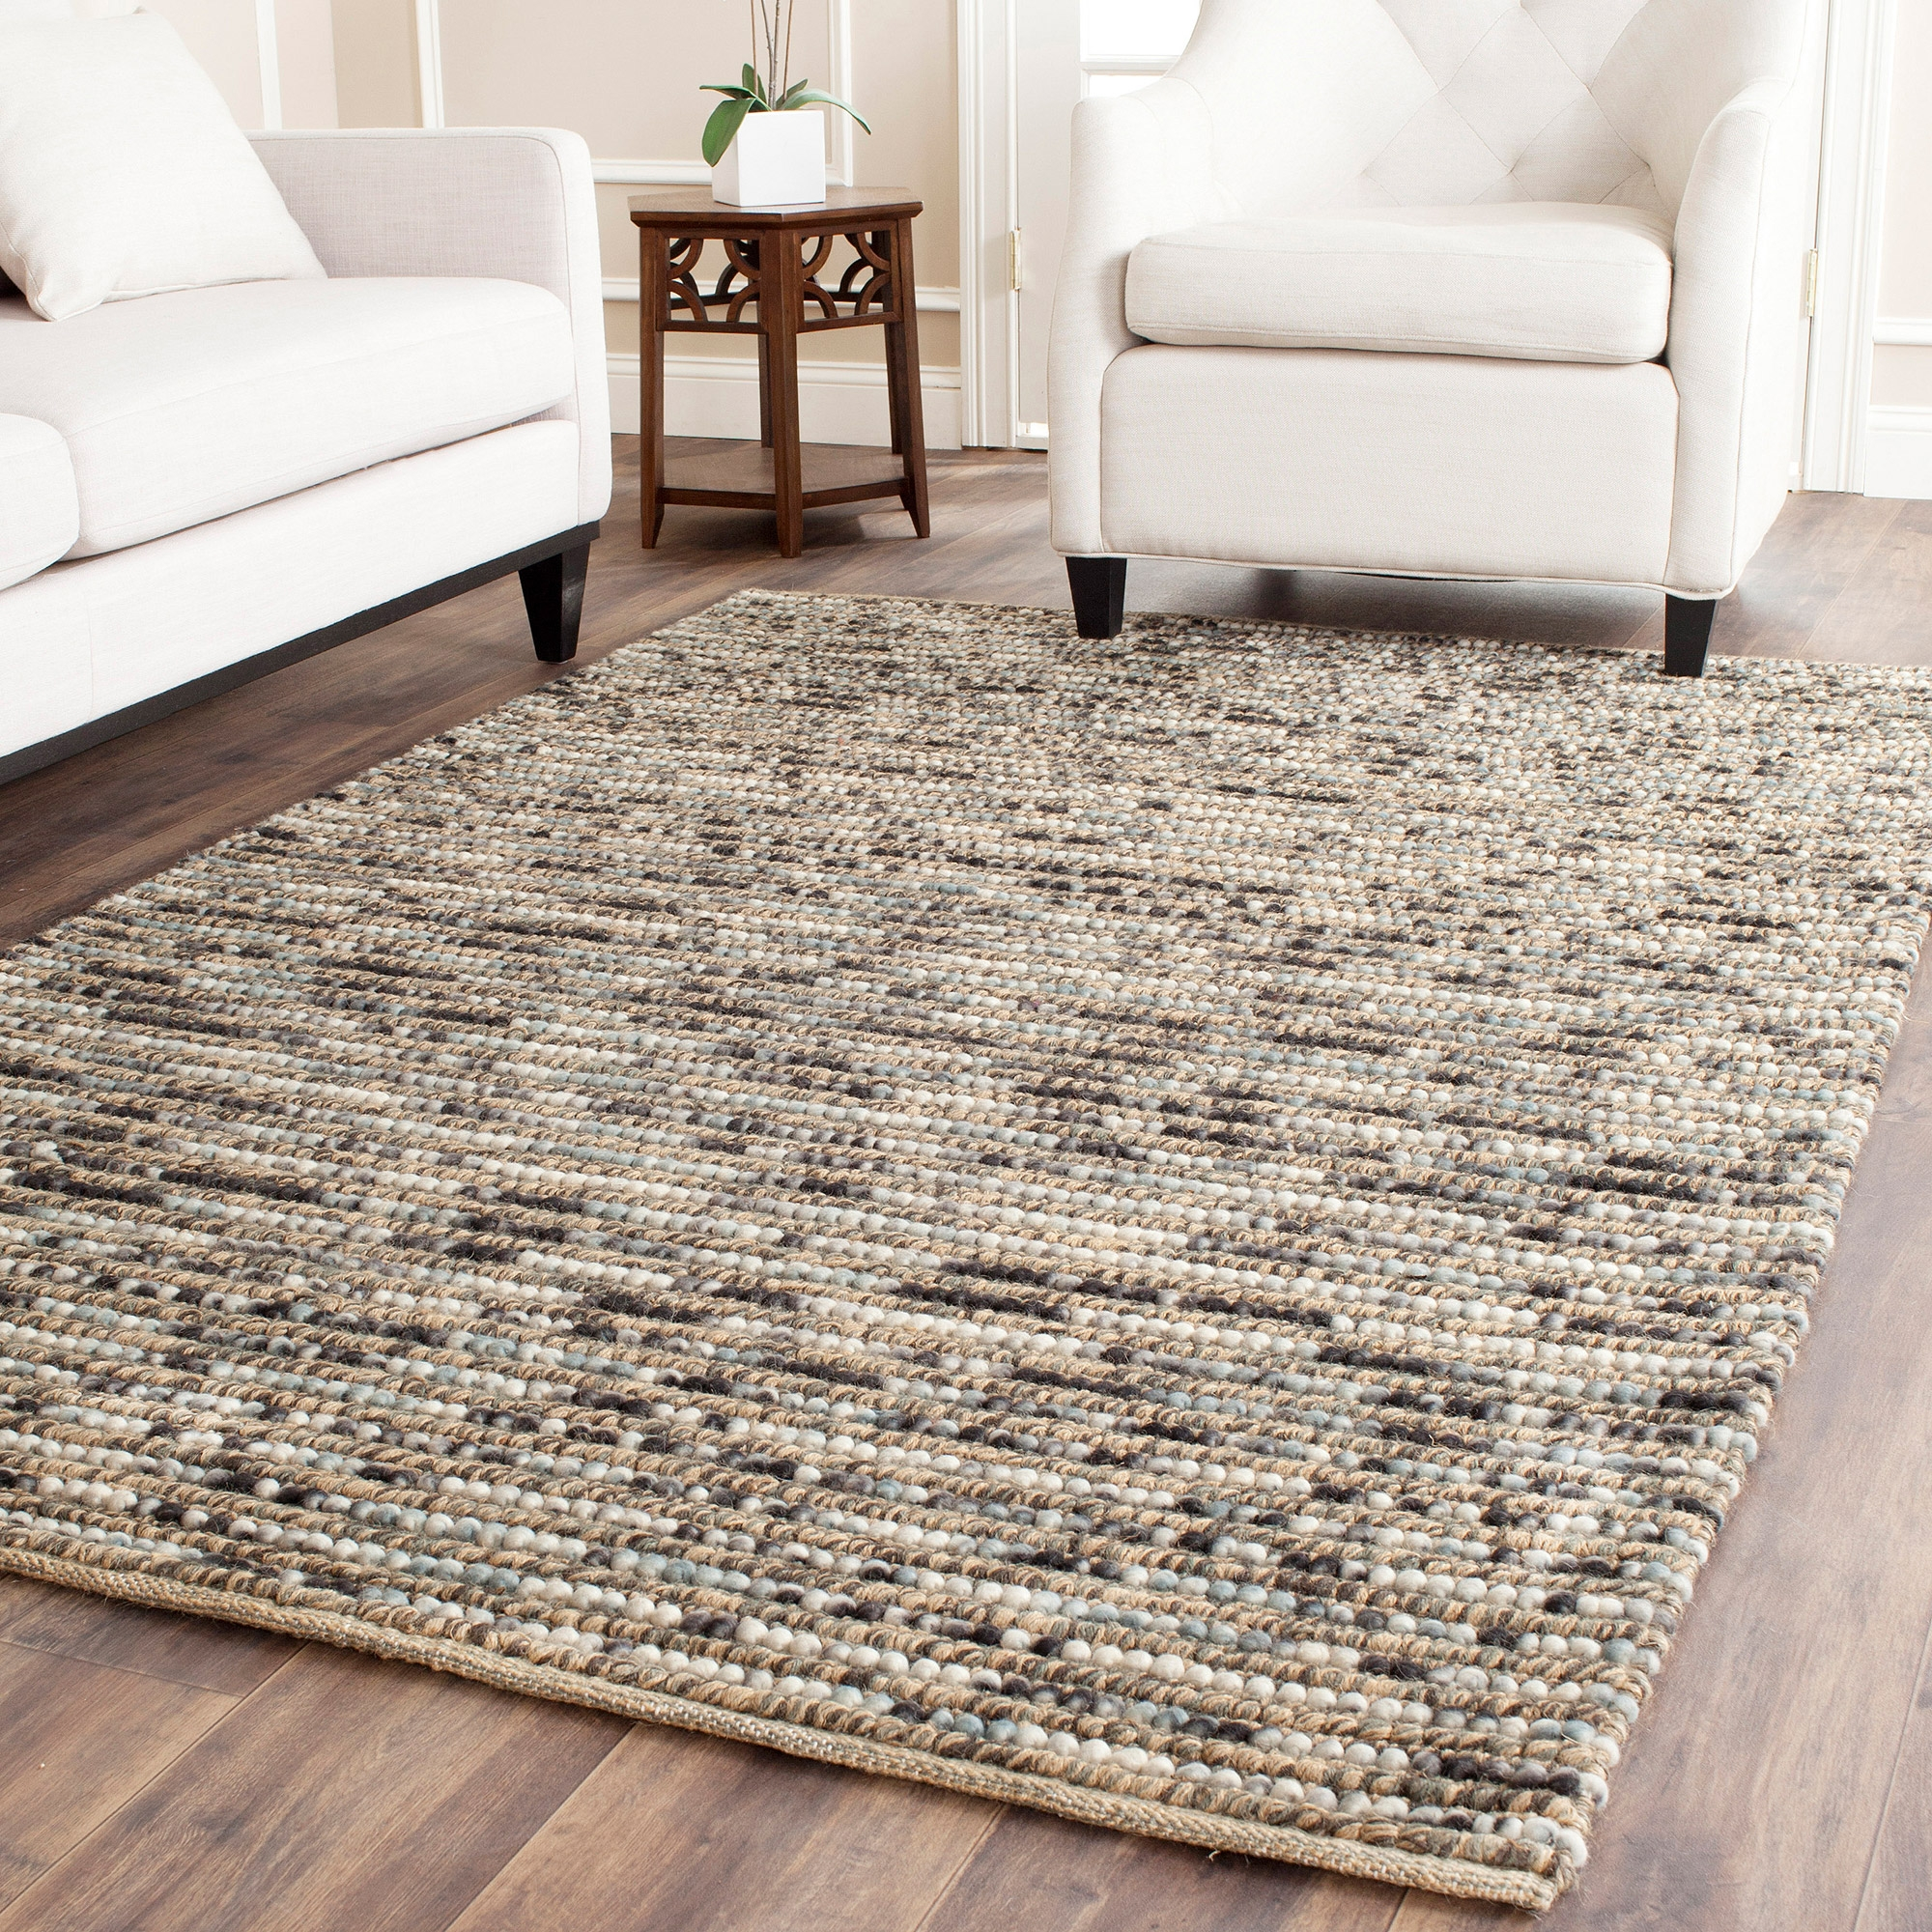 Popular Photo of Jute And Wool Area Rugs